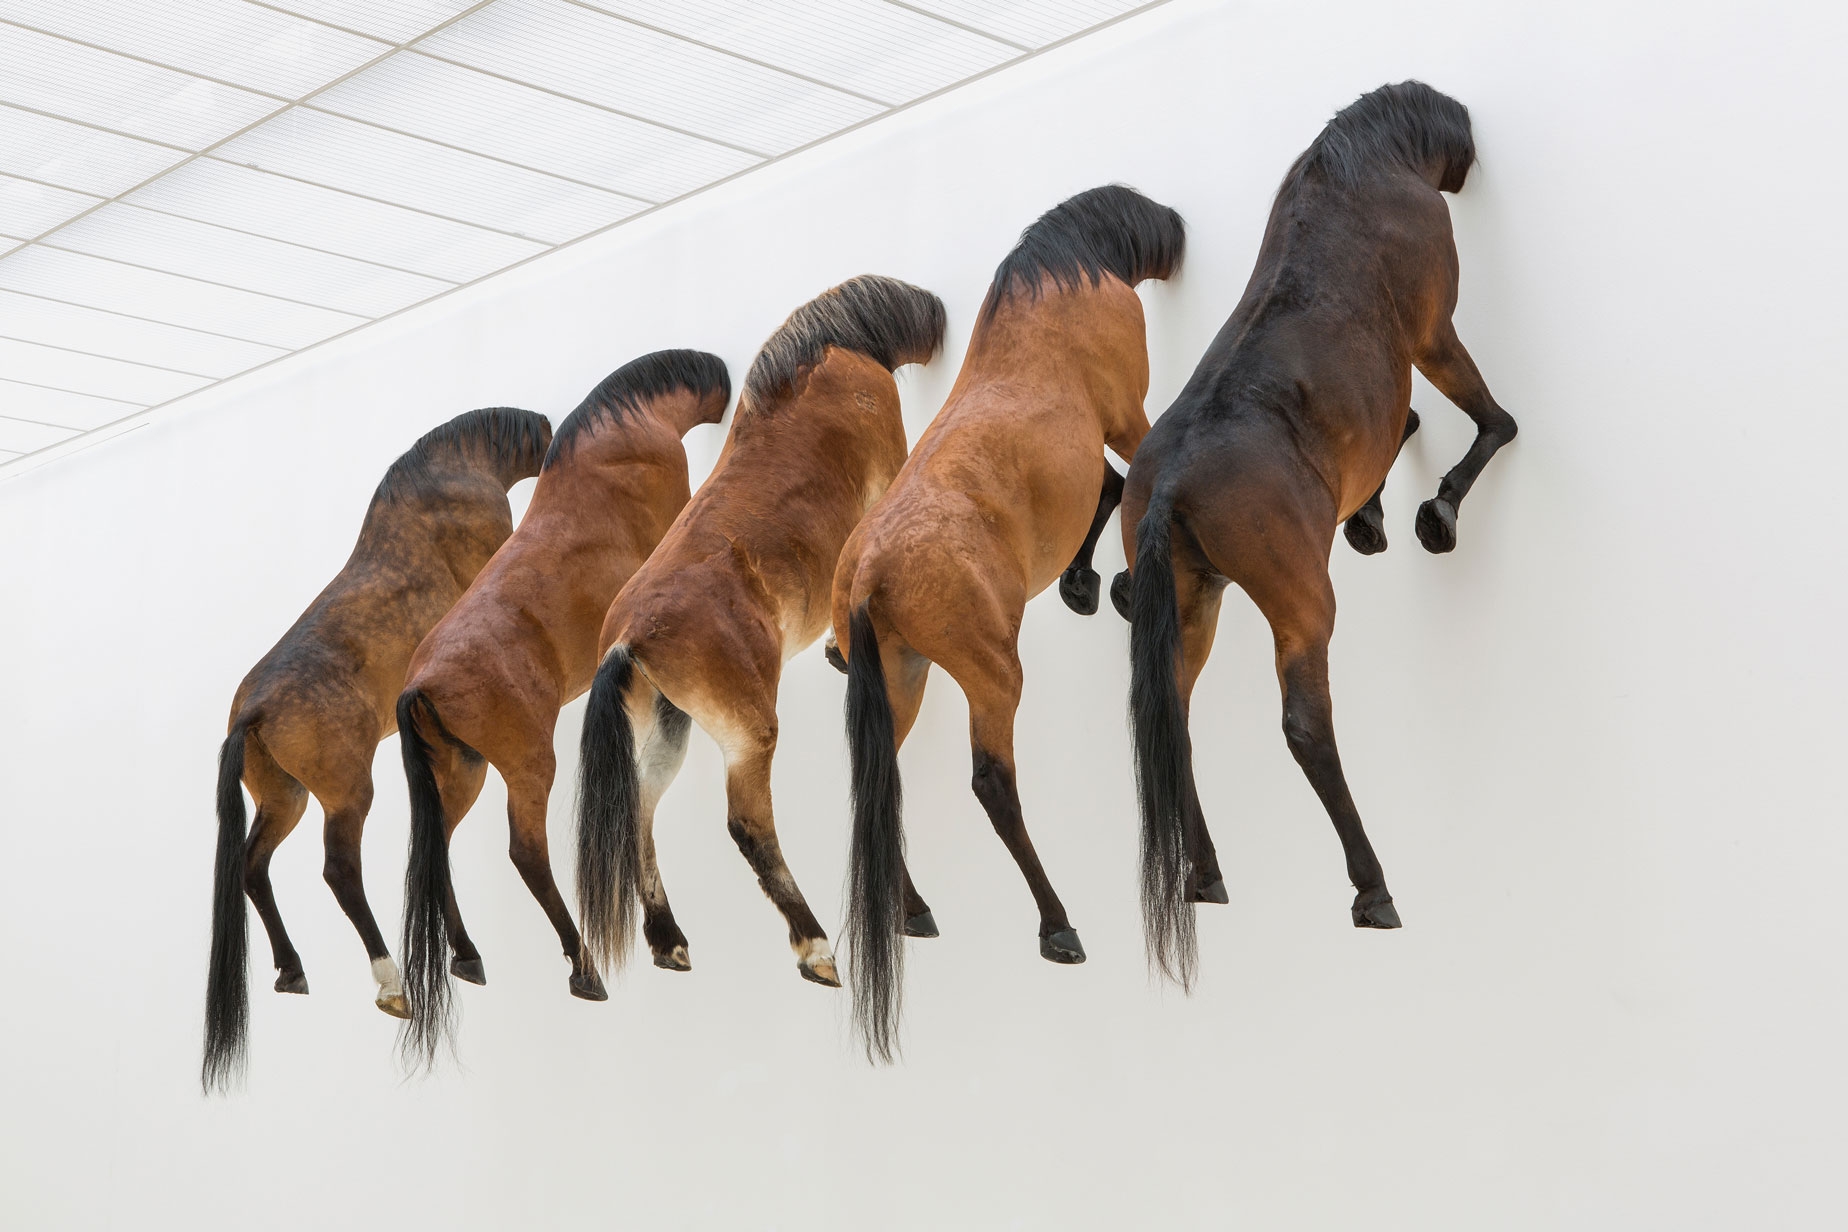 Maurizio Cattelan's 3 editions + 2AP of Untitled 2007, Exhibition view, Kaputt, Fondation Beyeler 2013